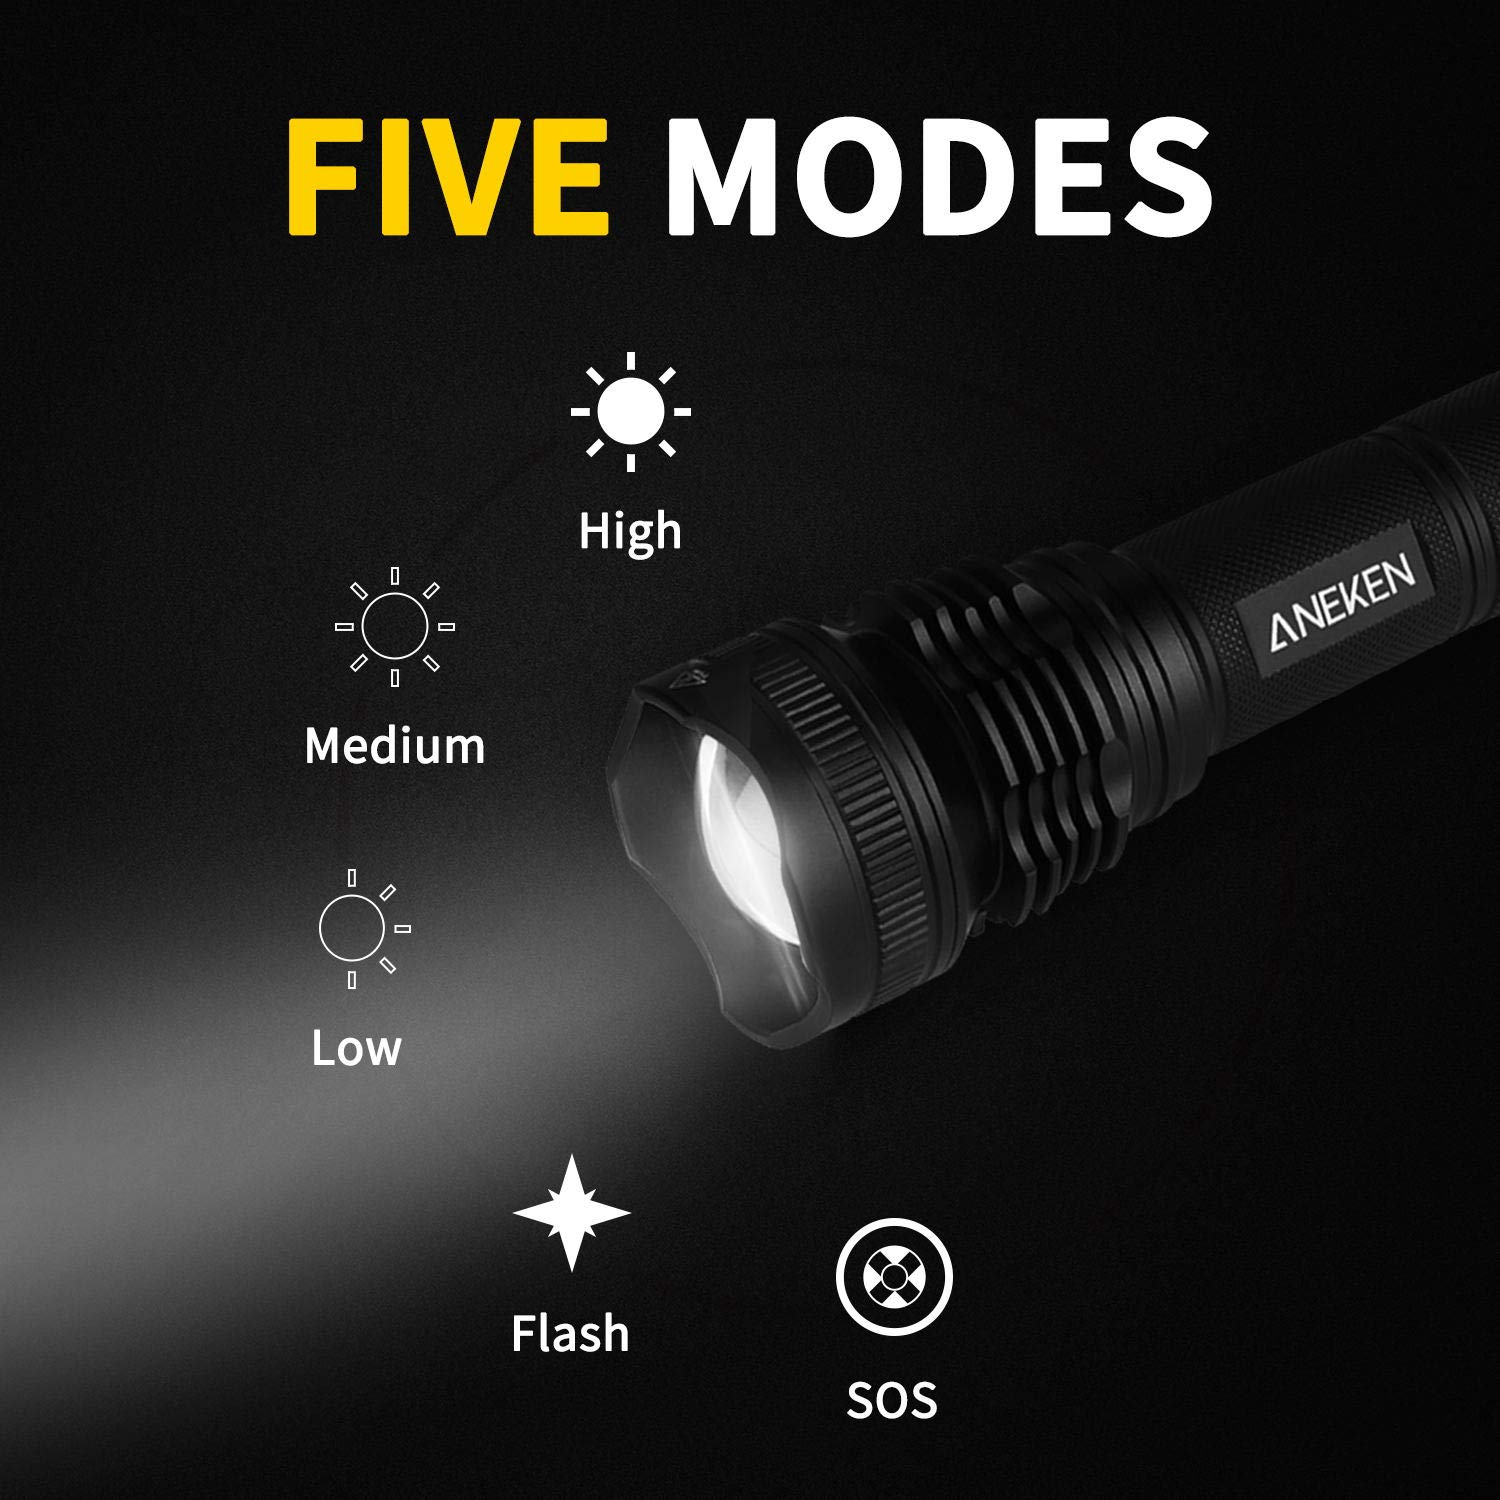 2000LM Outdoor Water Resistant Torch IPX4 Zoomable 1000 Meters Torchlight 5 Light Modes for Camping Hiking and Home Emergency Battery Included Aneken LED Portable Ultra Bright Handheld Flashlight